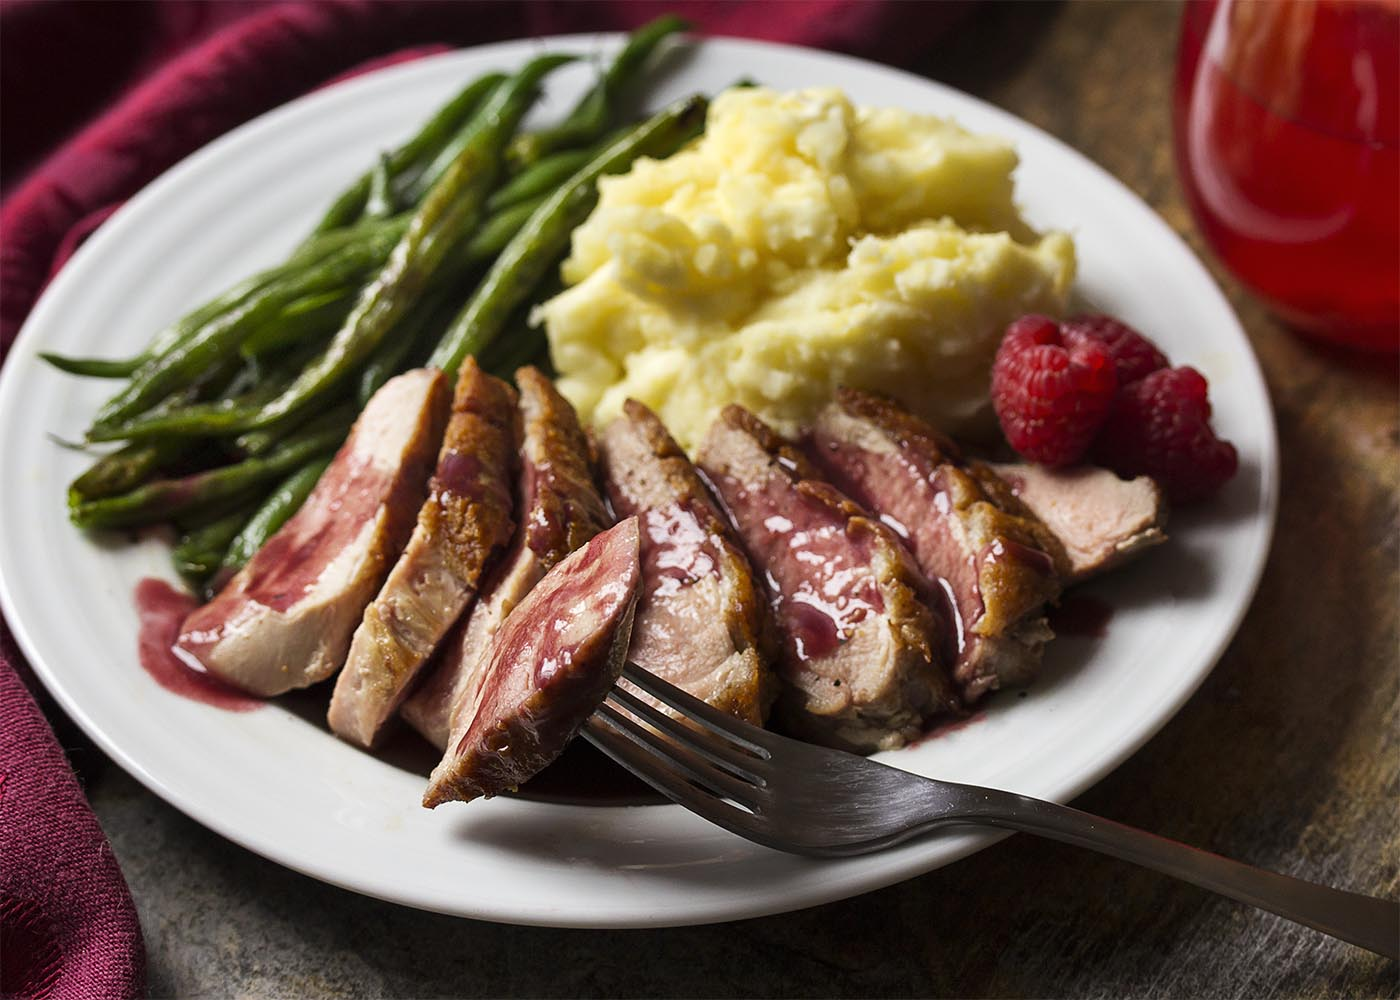 How to Make the Most of Raspberry for Making Duck Recipes?